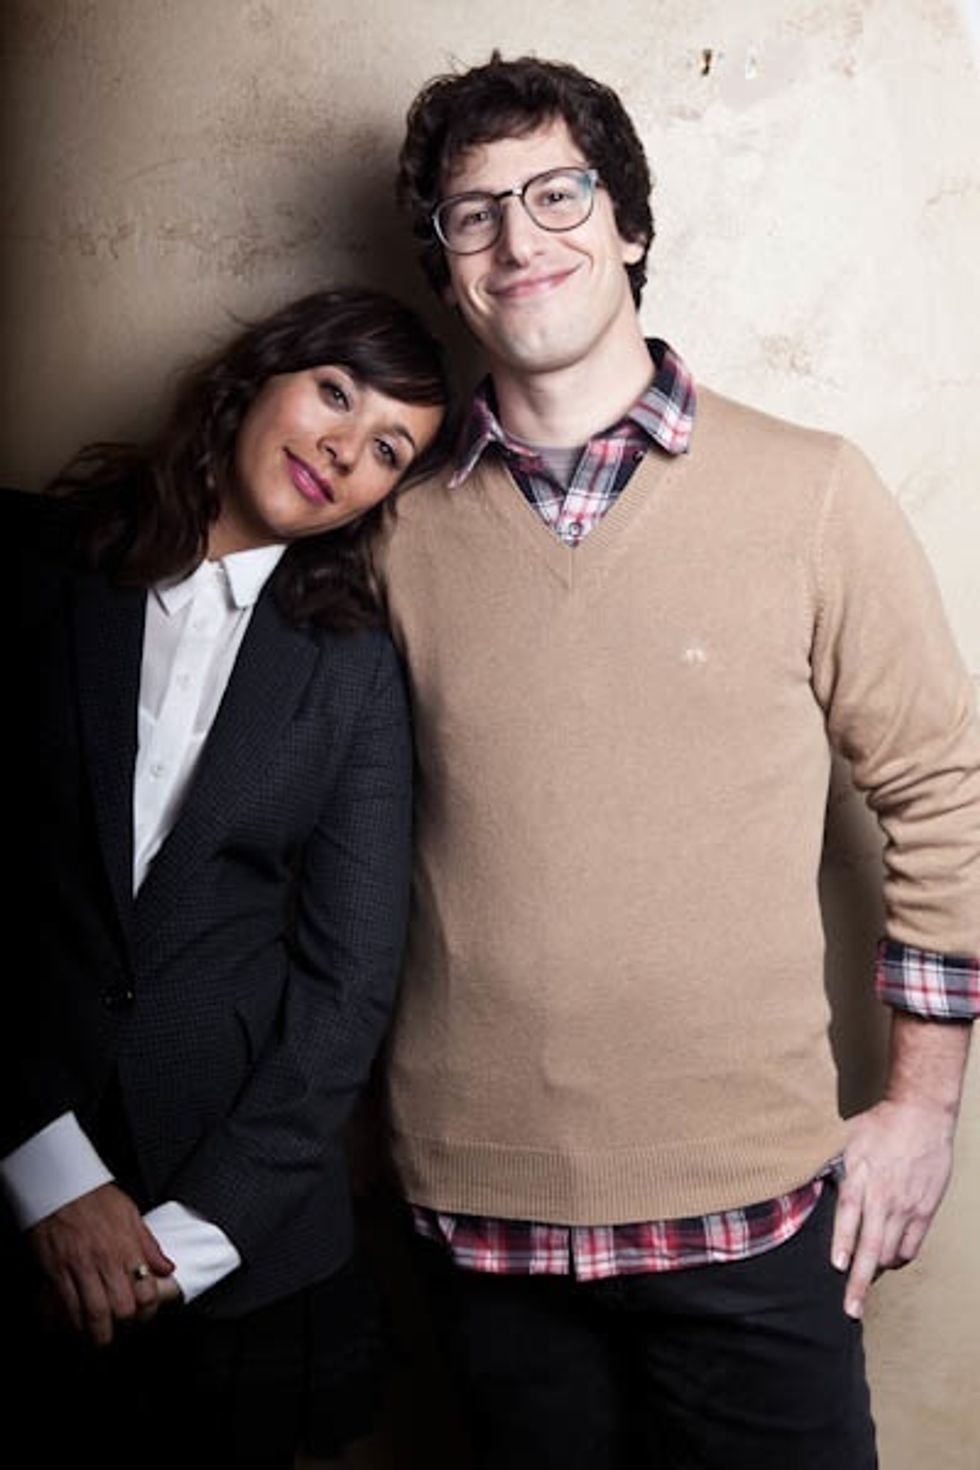 Andy Samberg and Rashida Jones Cuddle at Sundance